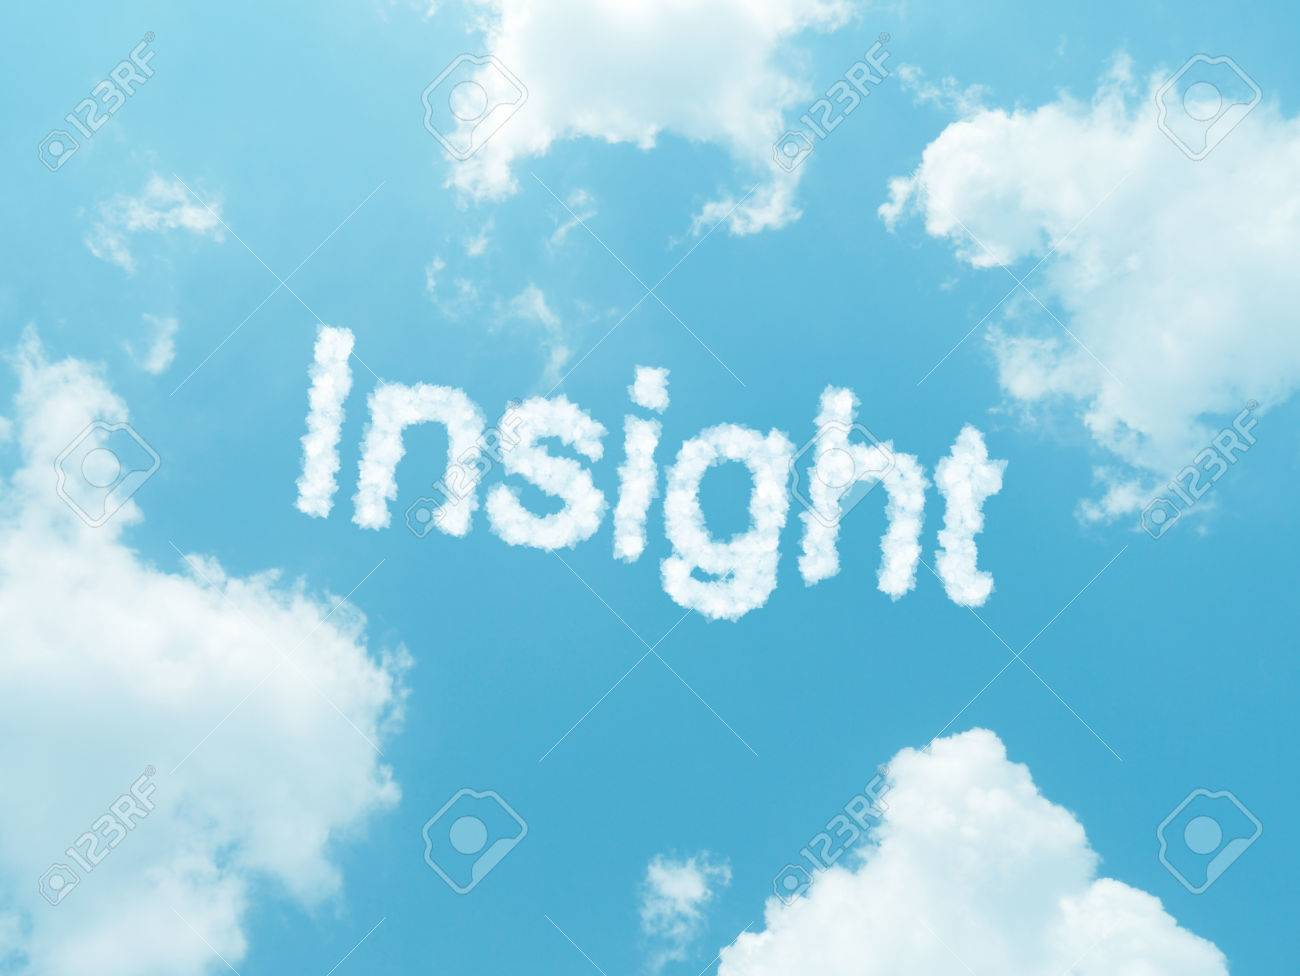 Insight Cloud Word With Design On Blue Sky Background Stock Photo 1300x976